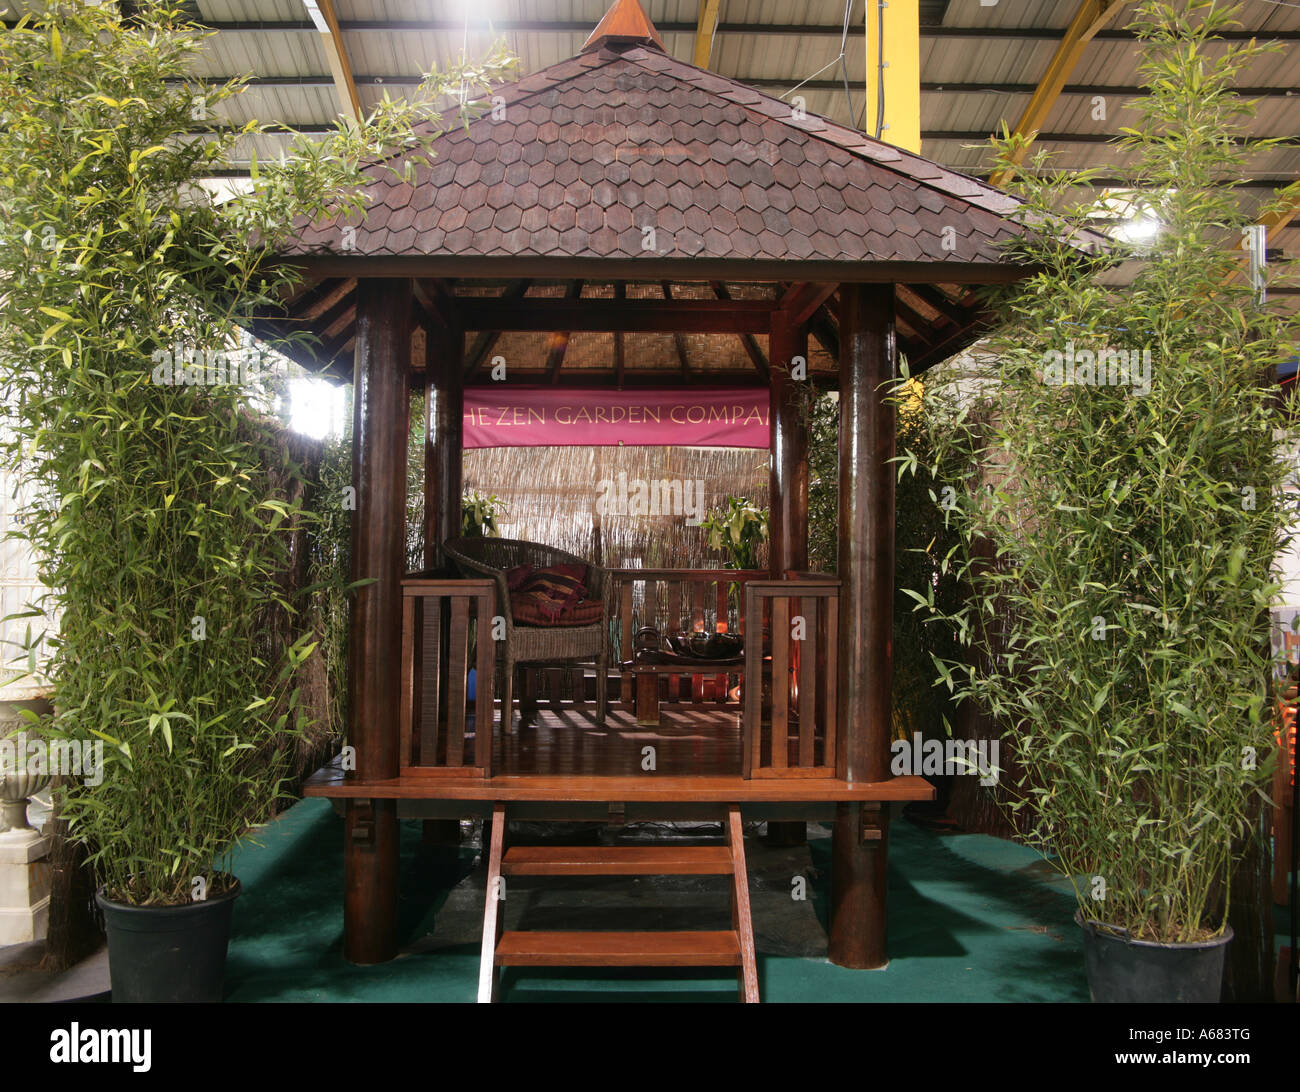 Balinese gazebo from the Zen Garden Company - Stock Image